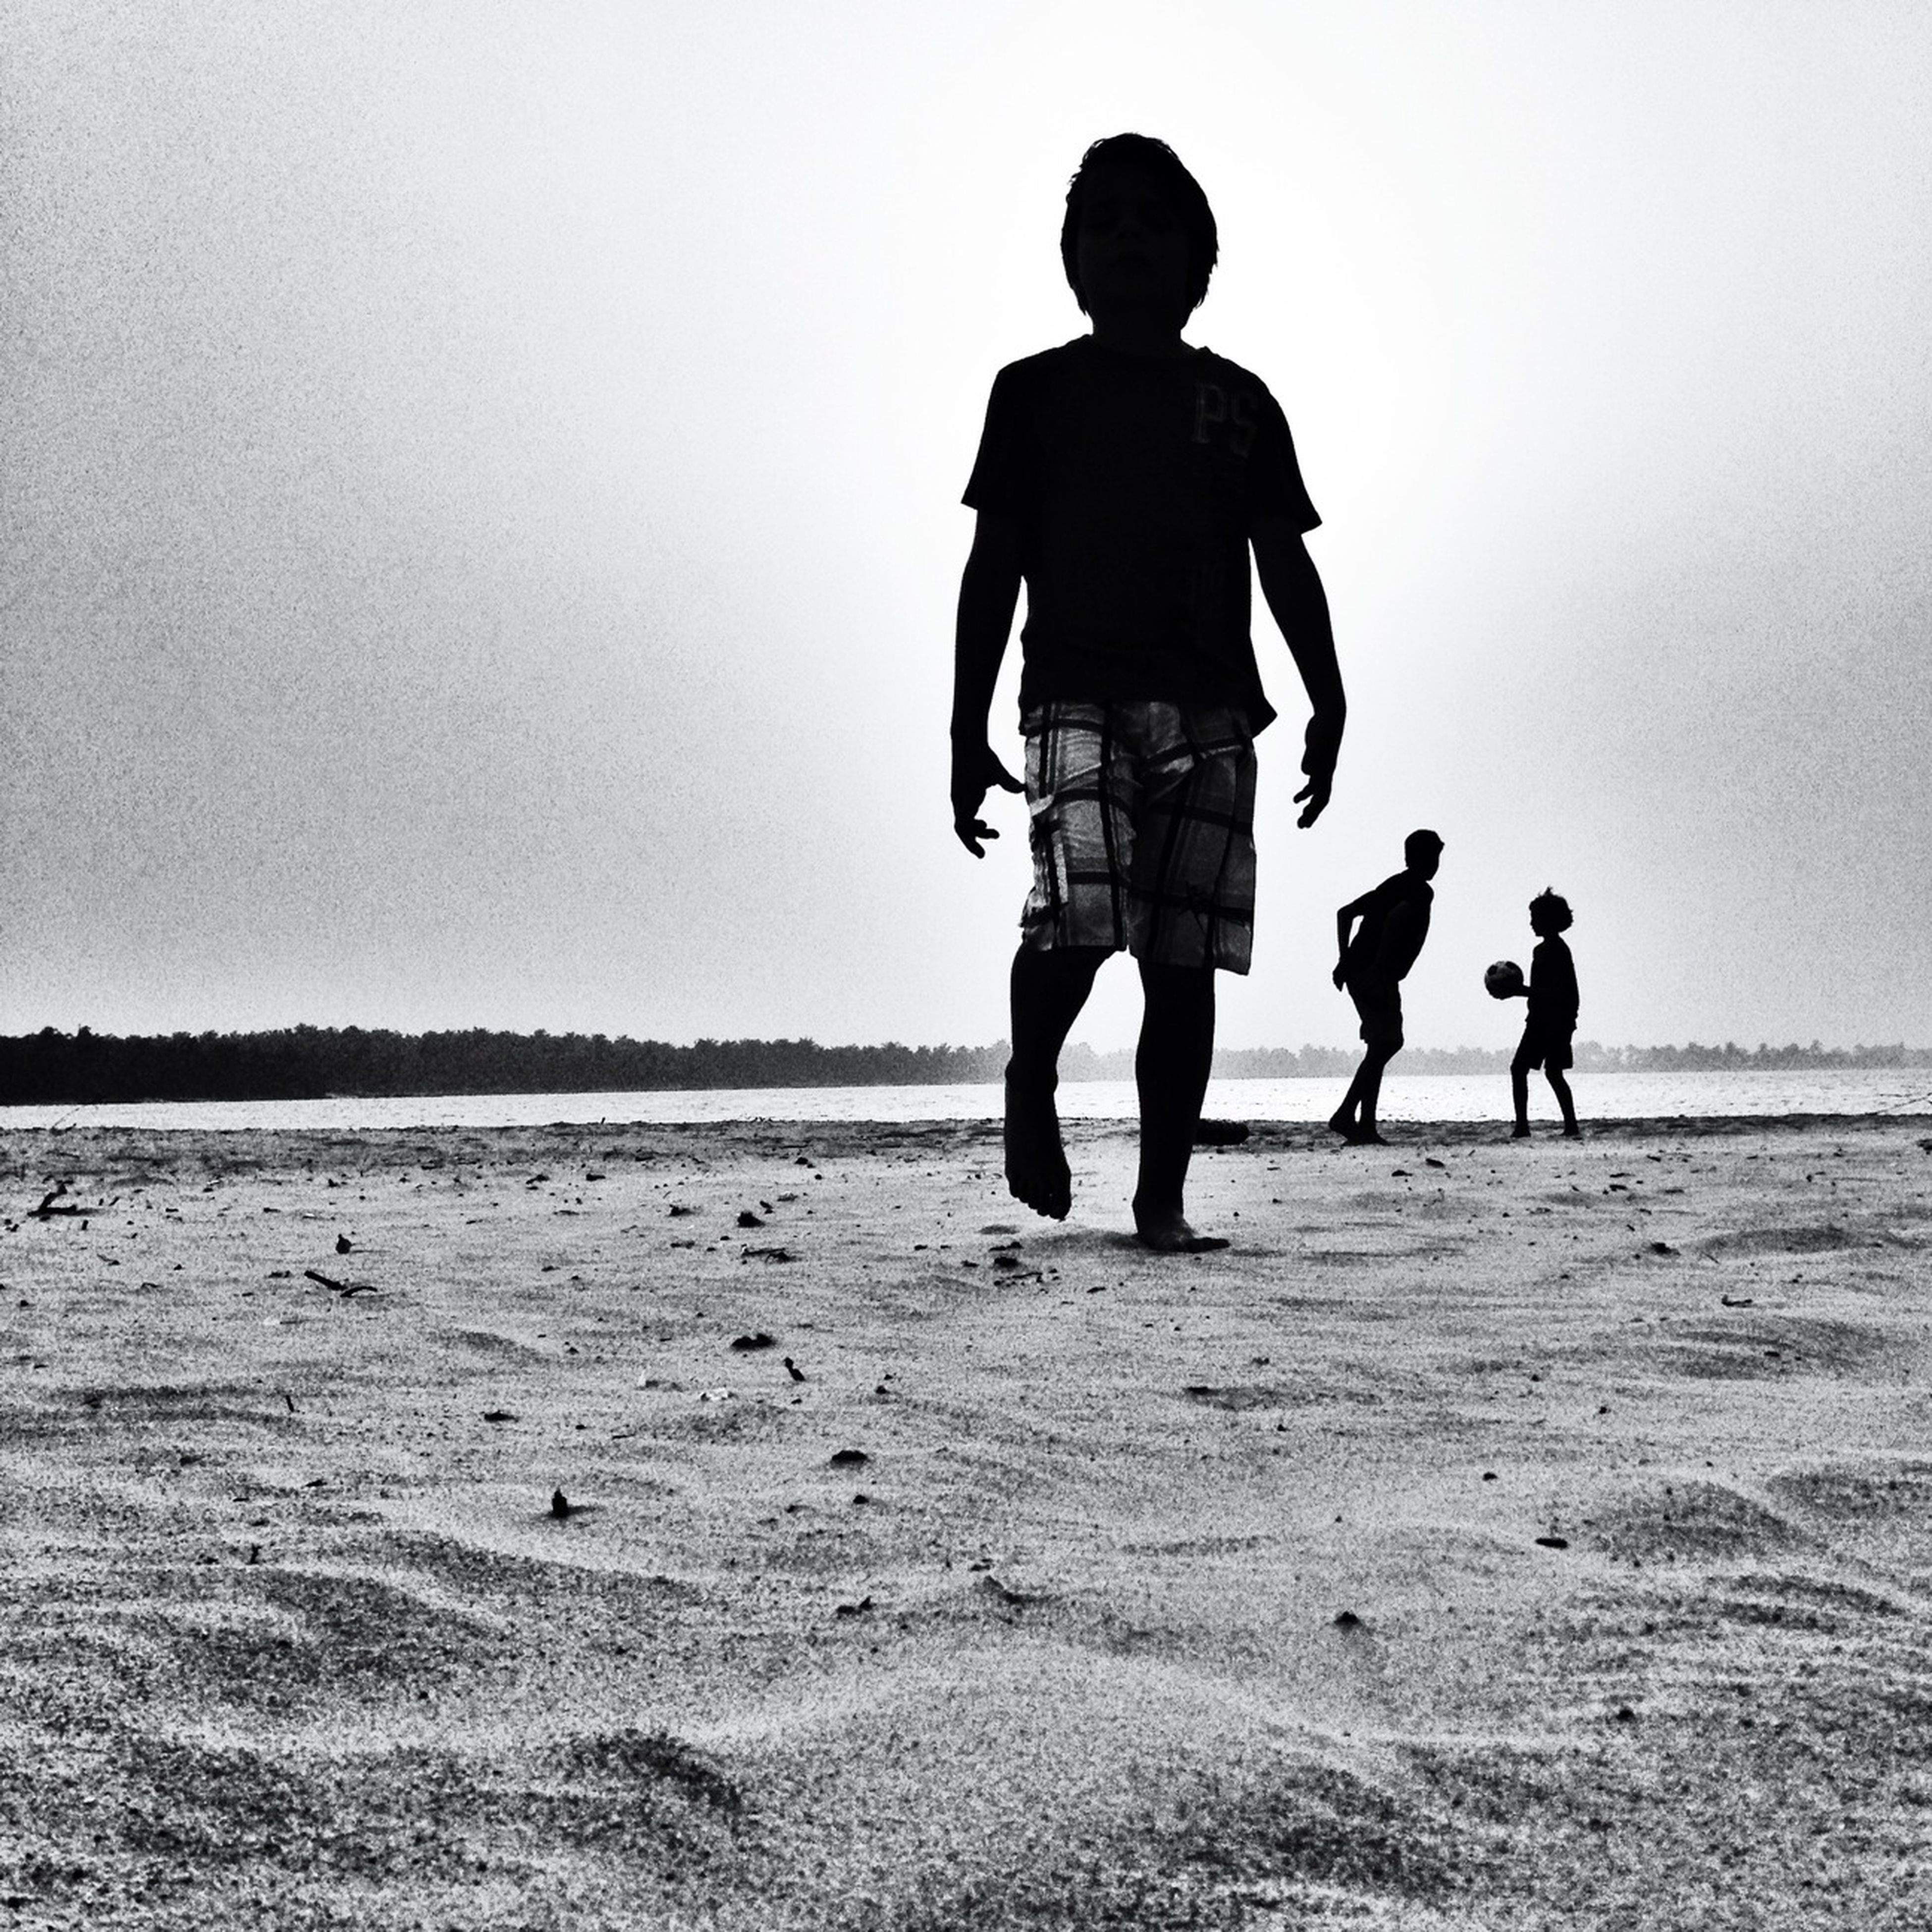 full length, beach, lifestyles, leisure activity, rear view, clear sky, childhood, sand, men, togetherness, walking, boys, copy space, standing, sea, casual clothing, shore, bonding